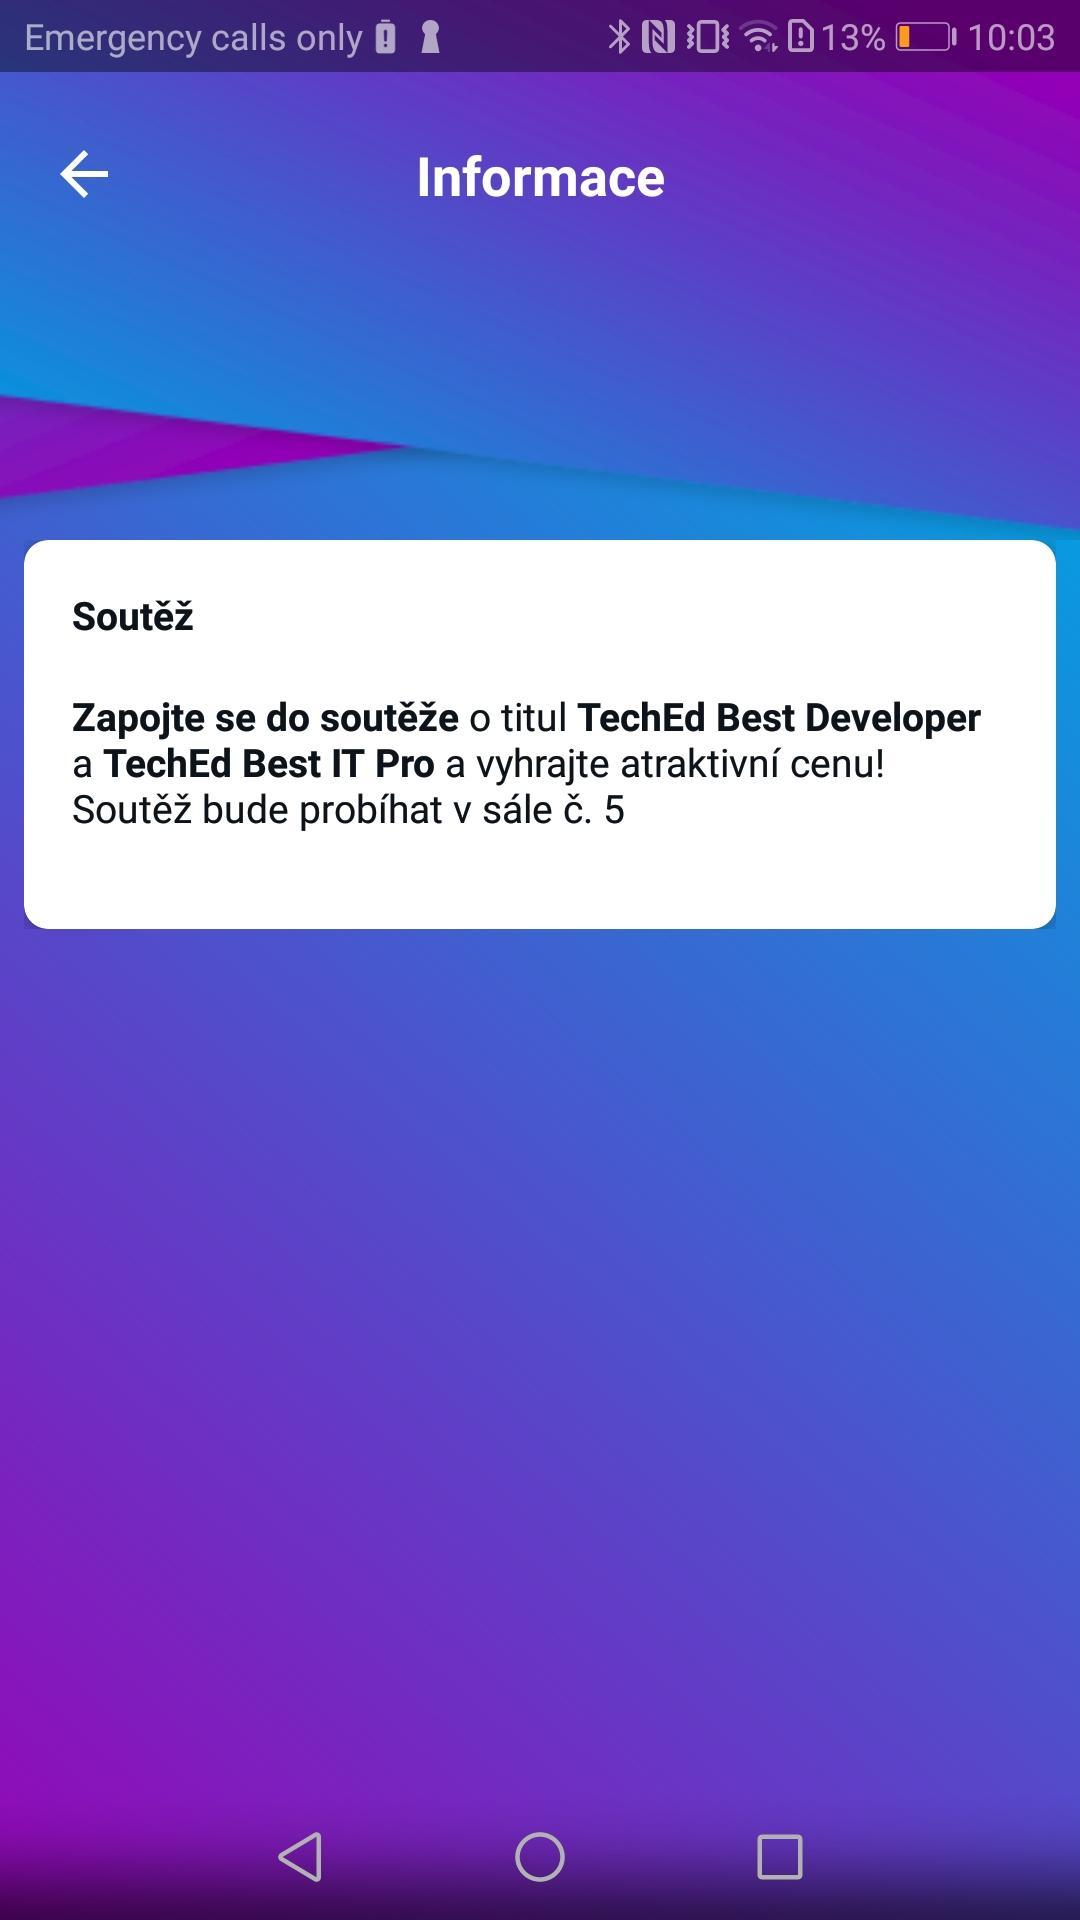 TechEd - DevCon 2019 for Android - APK Download